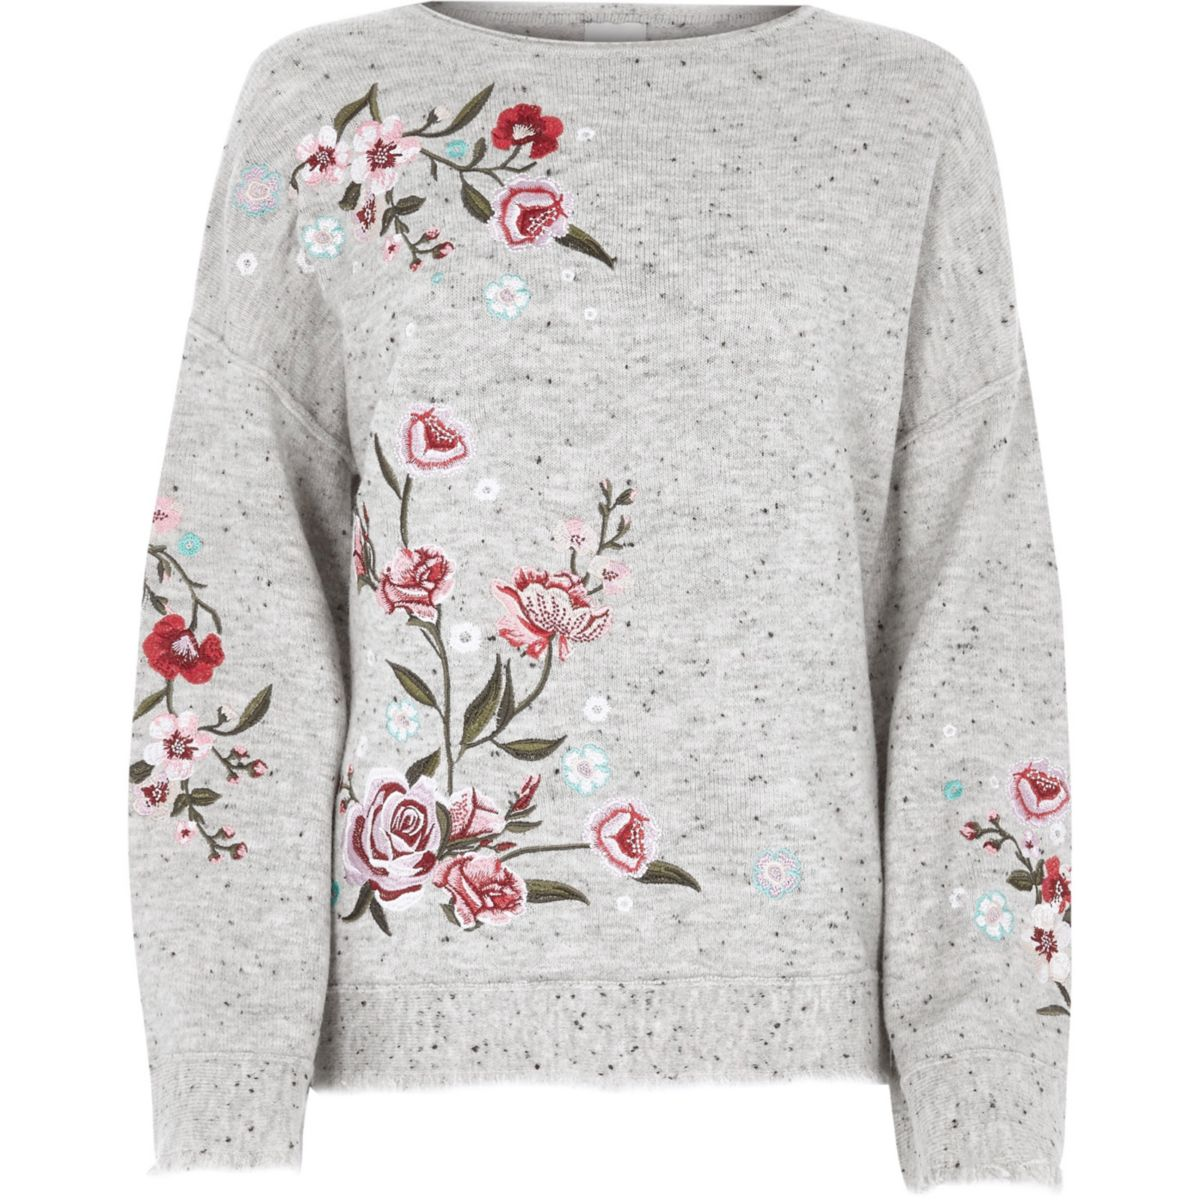 Grey floral embroidered sweater